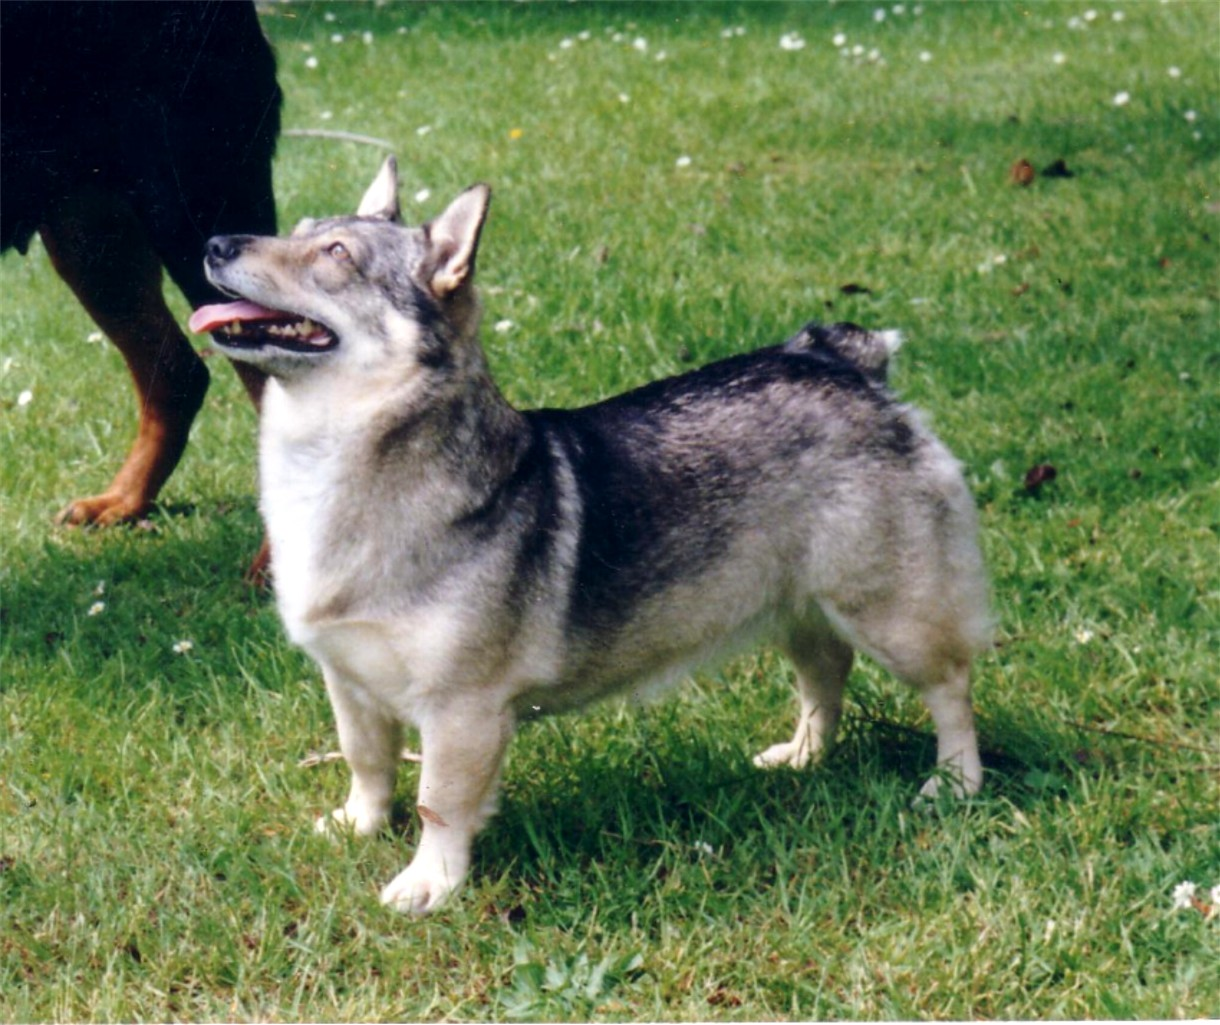 watching-swedish-vallhund-dog-photo.jpg